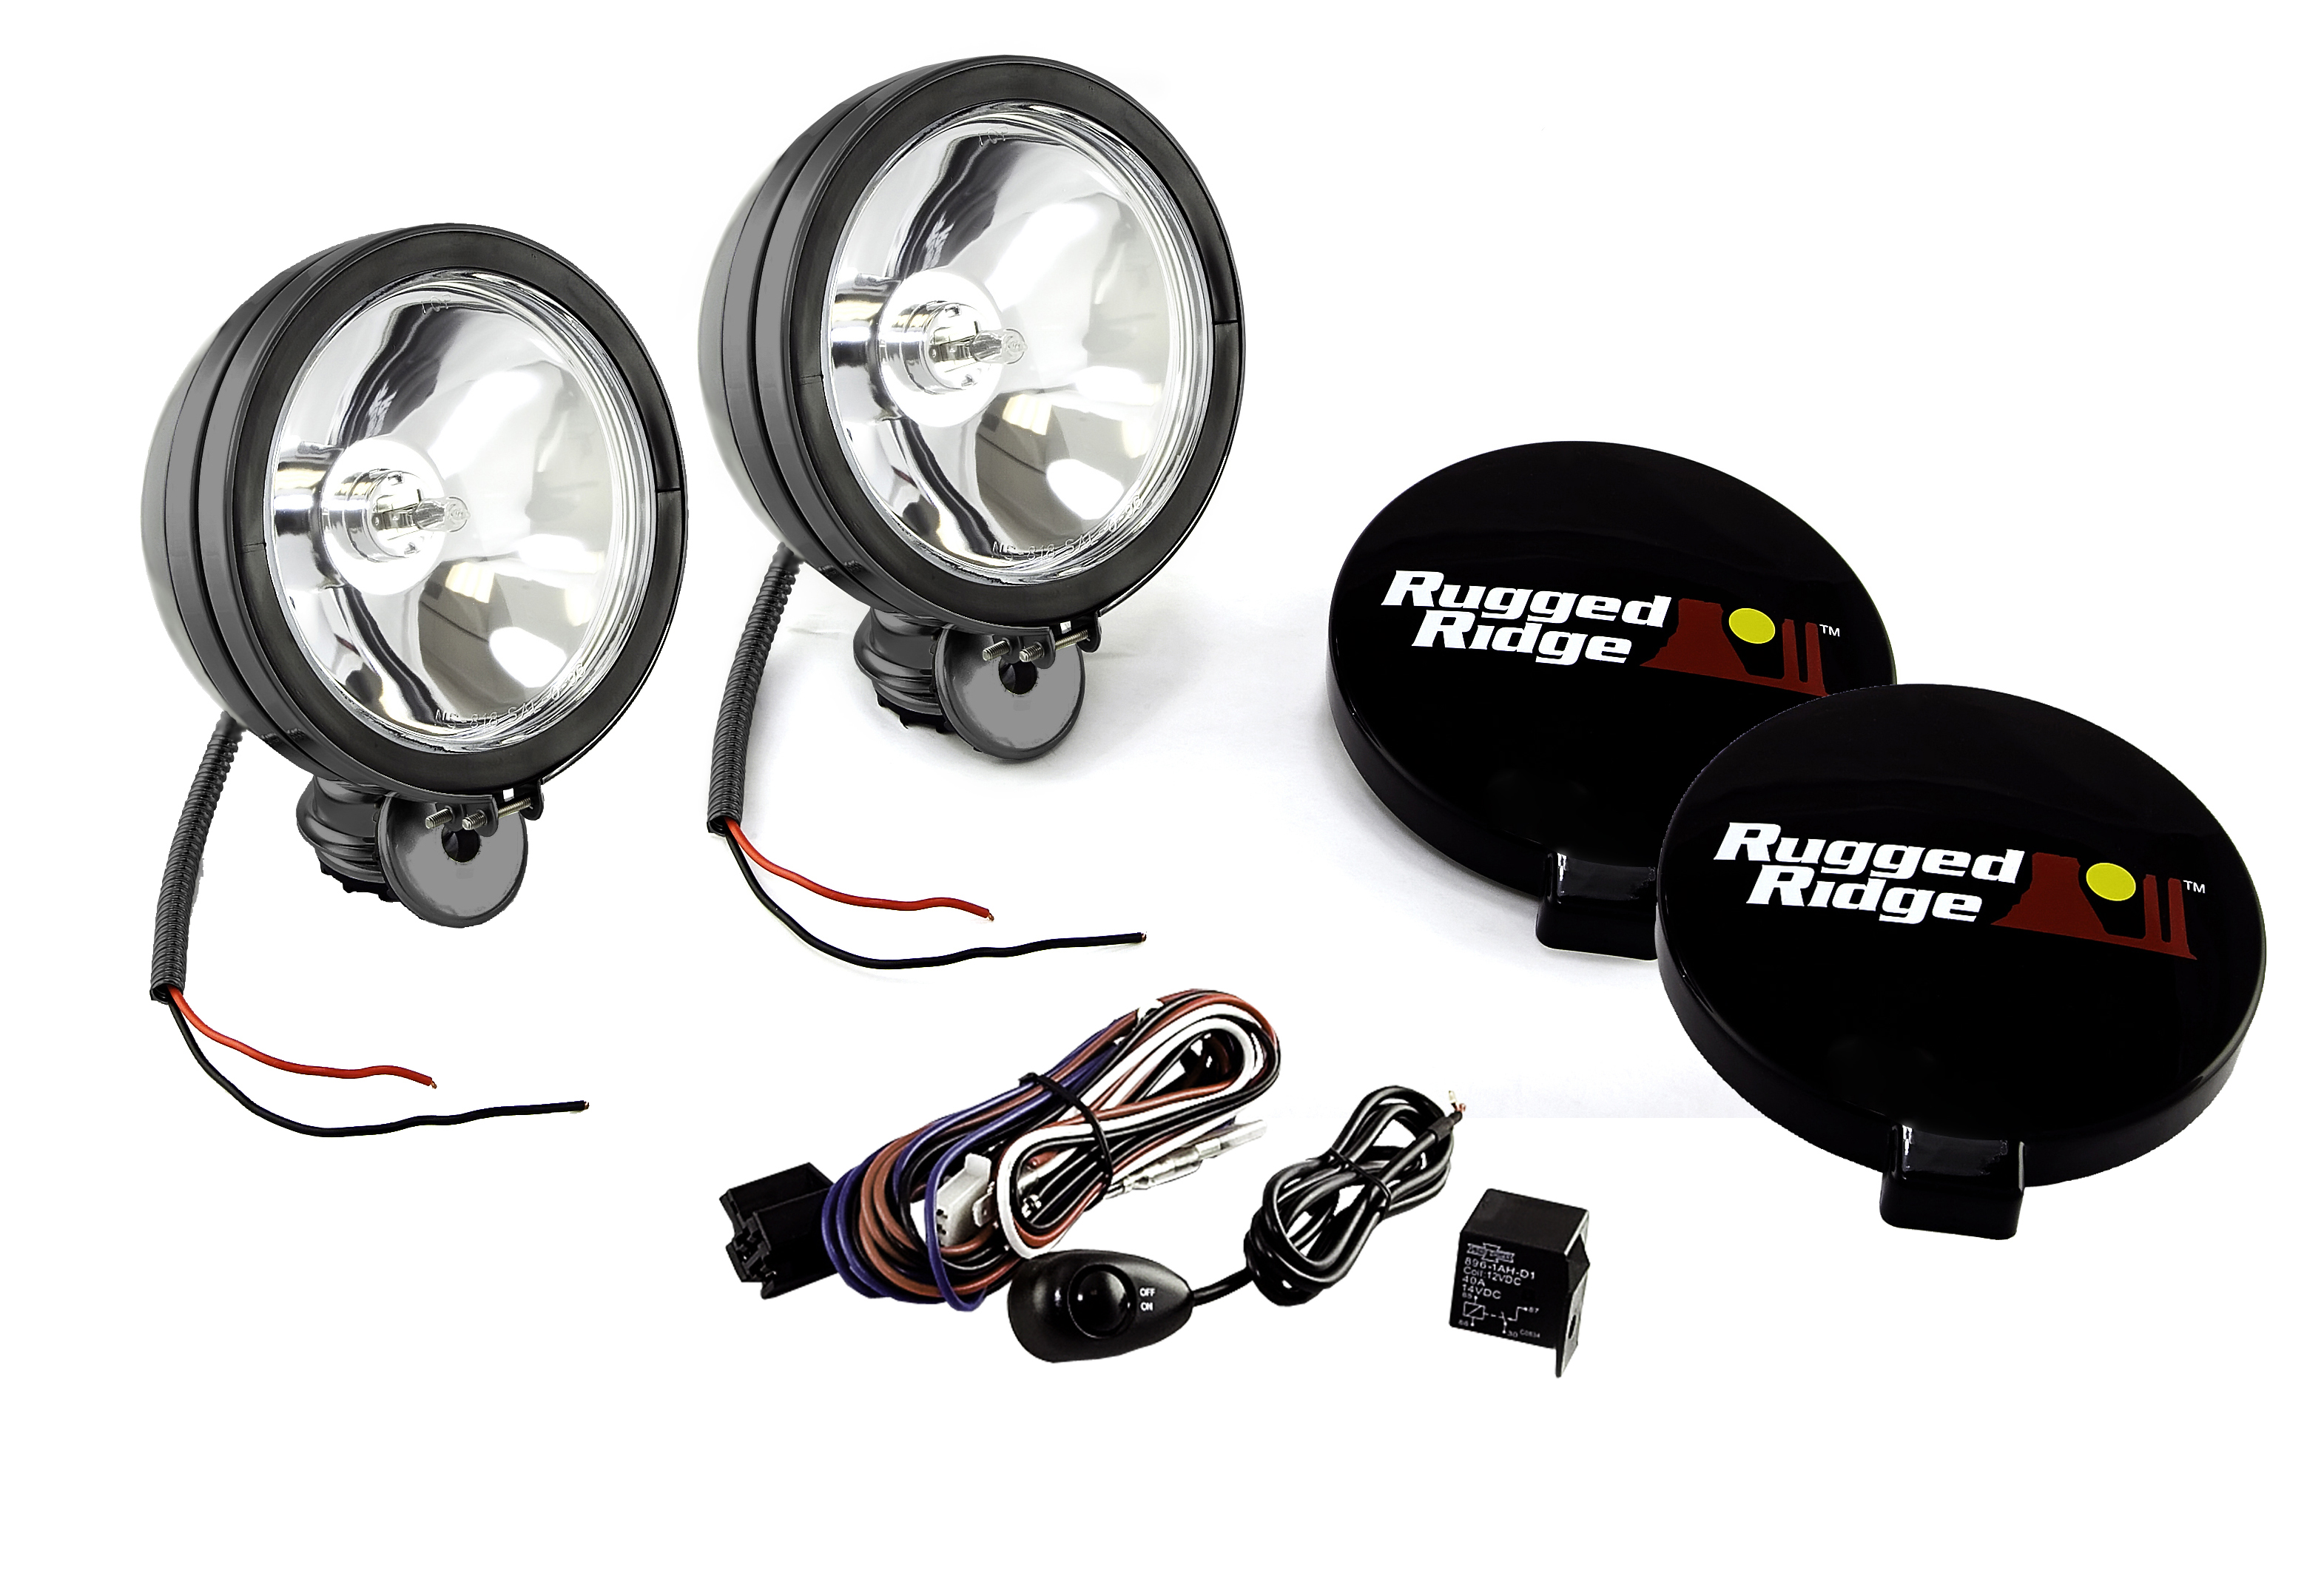 Off Road Lights Halogen Wiring Harness 38 Diagram Images For Kc Rugged Ridge Light Kit Highlights